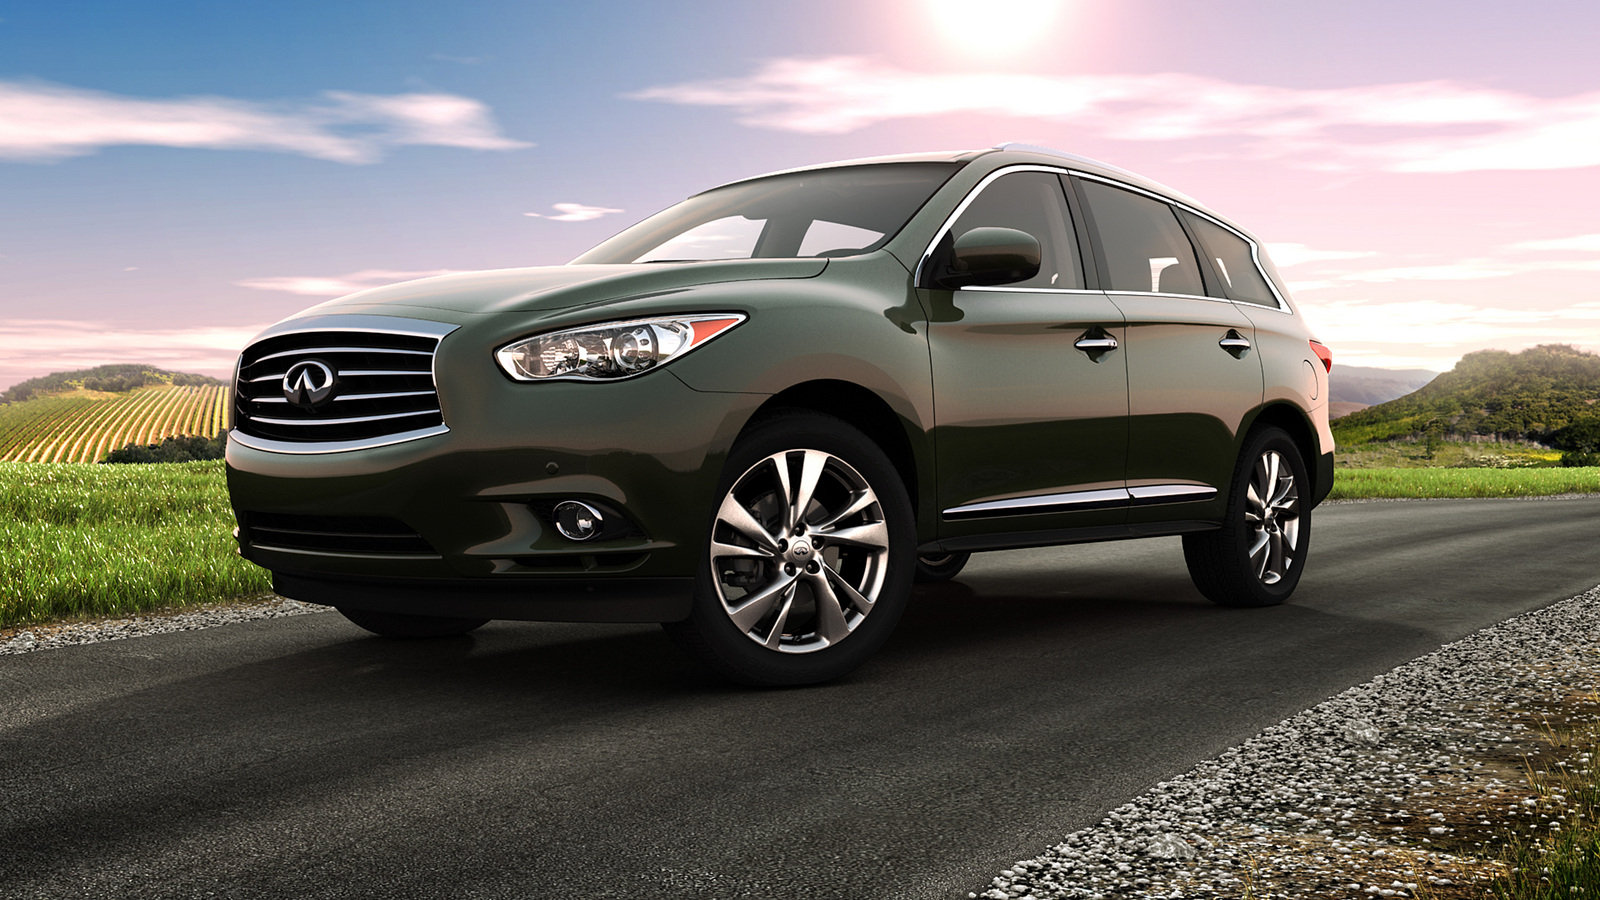 2014 infiniti qx60 picture 526854 car review top speed. Black Bedroom Furniture Sets. Home Design Ideas